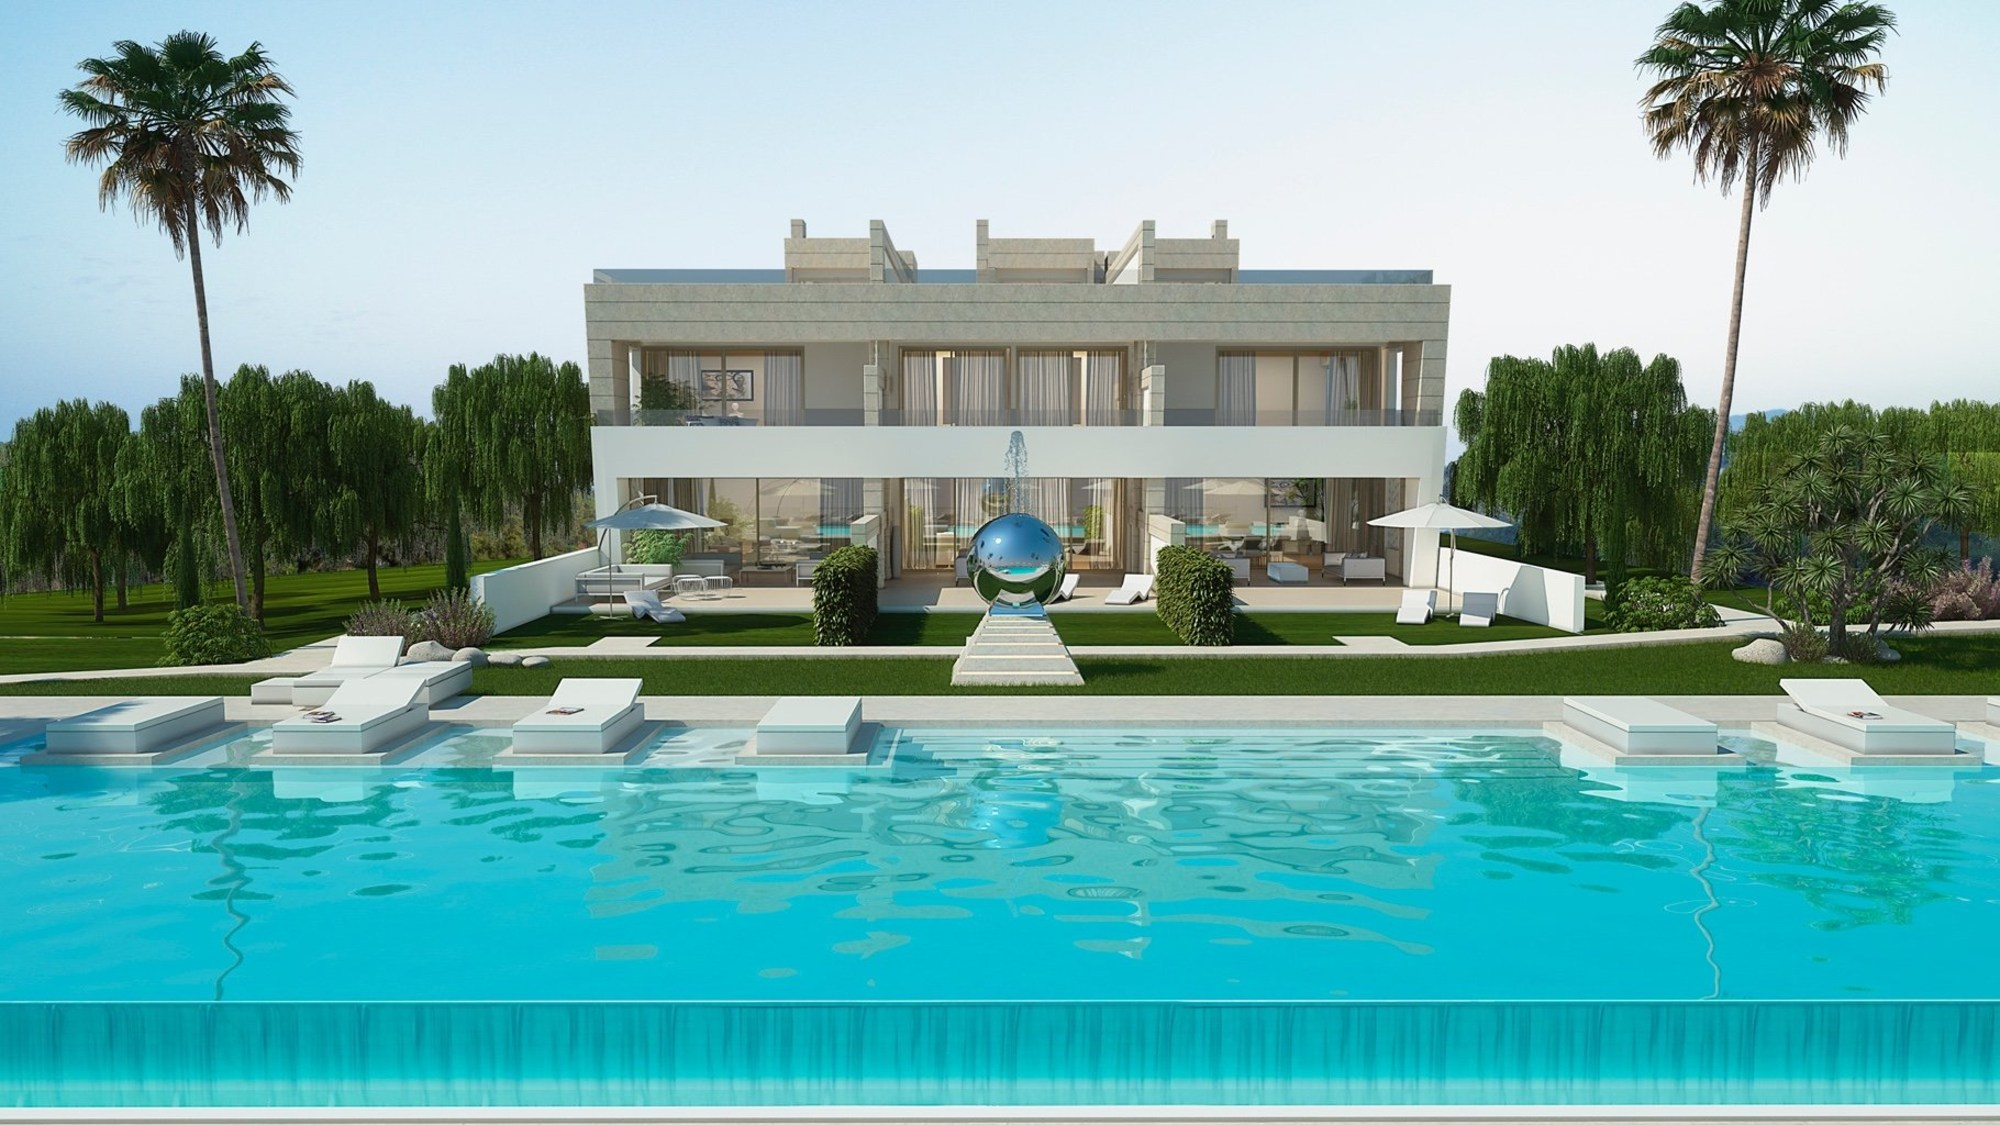 6 Bed -  Apartment for Sale in Sierra Blanca